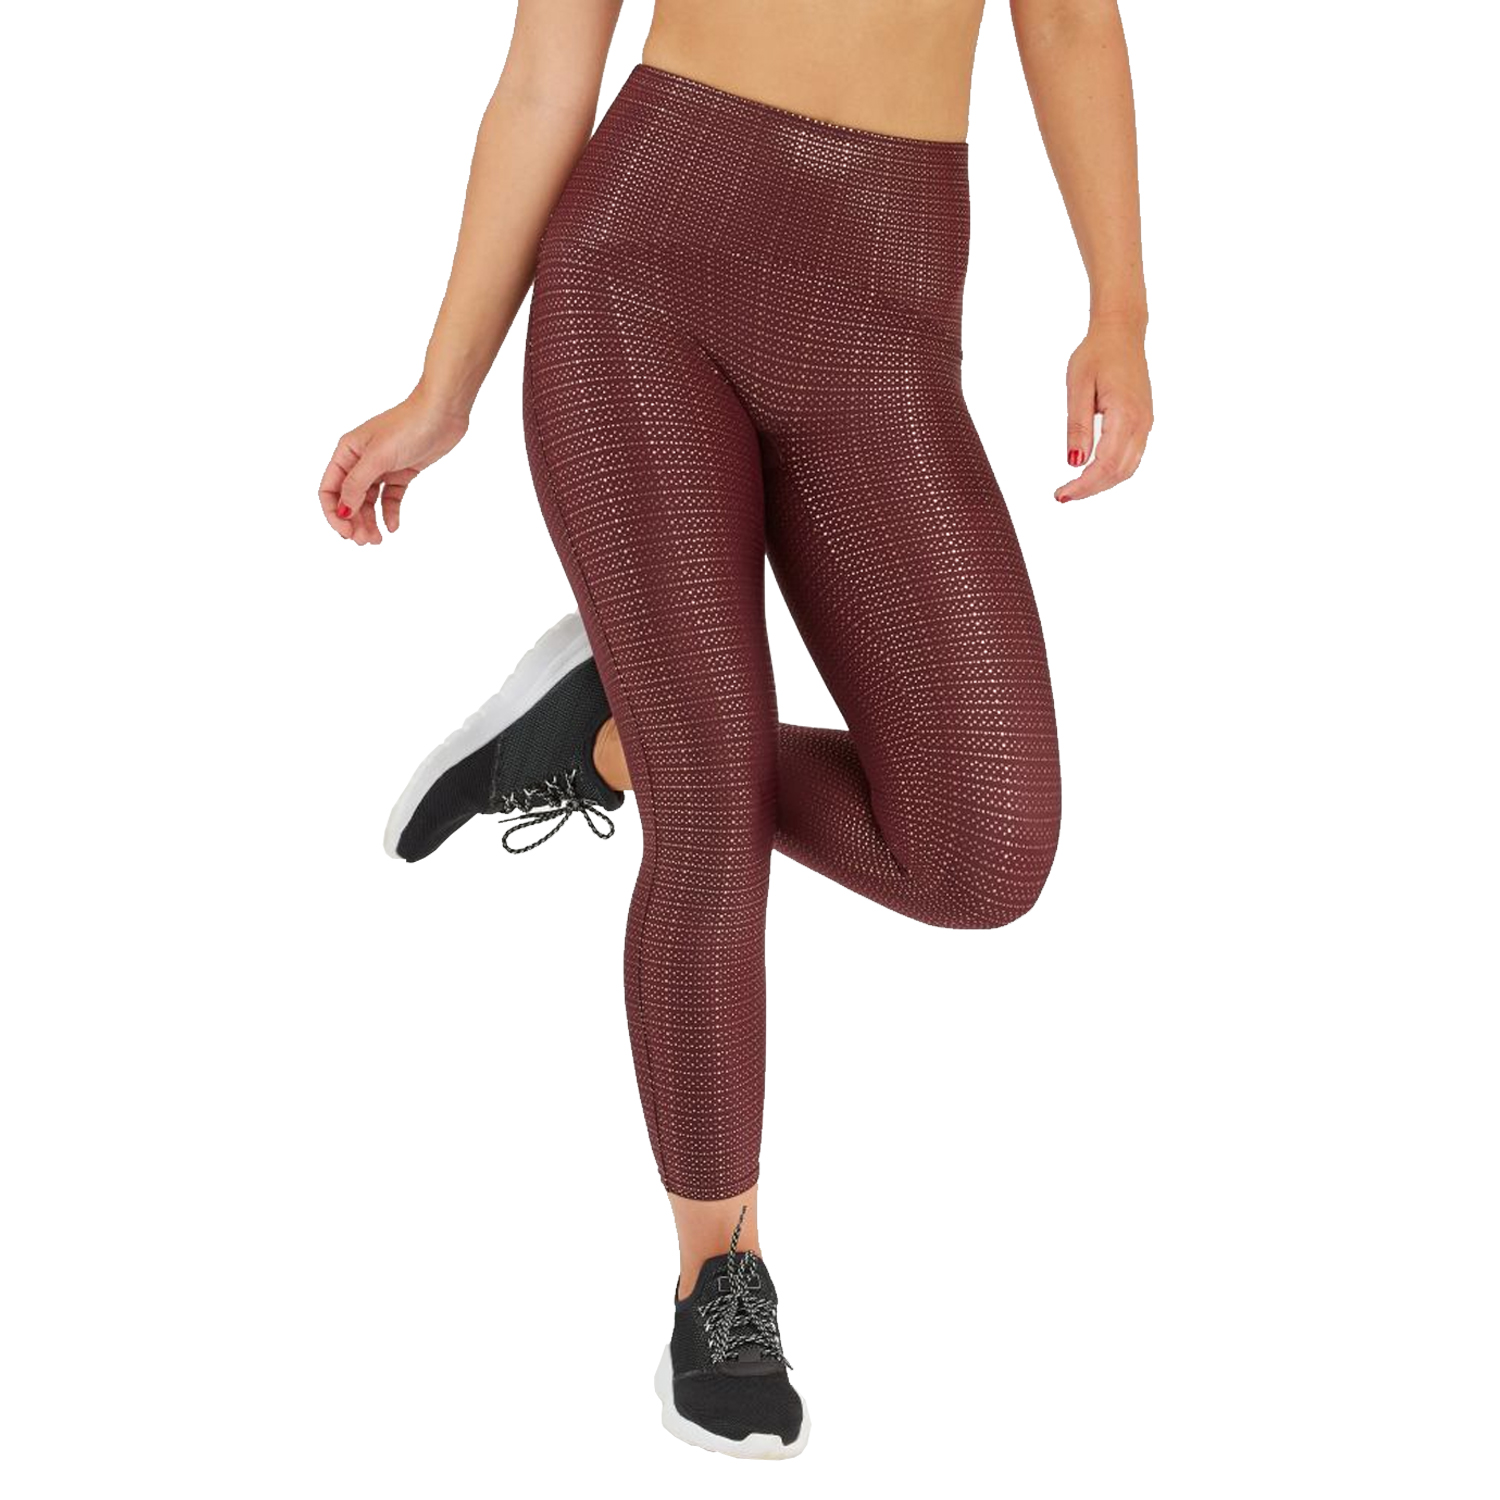 woman wearing wine colored active leggings with booty boost